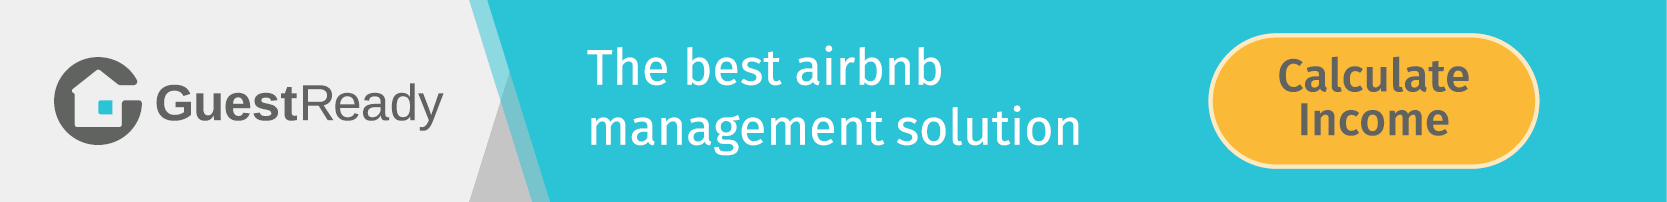 Airbnb Management Company GuestReady